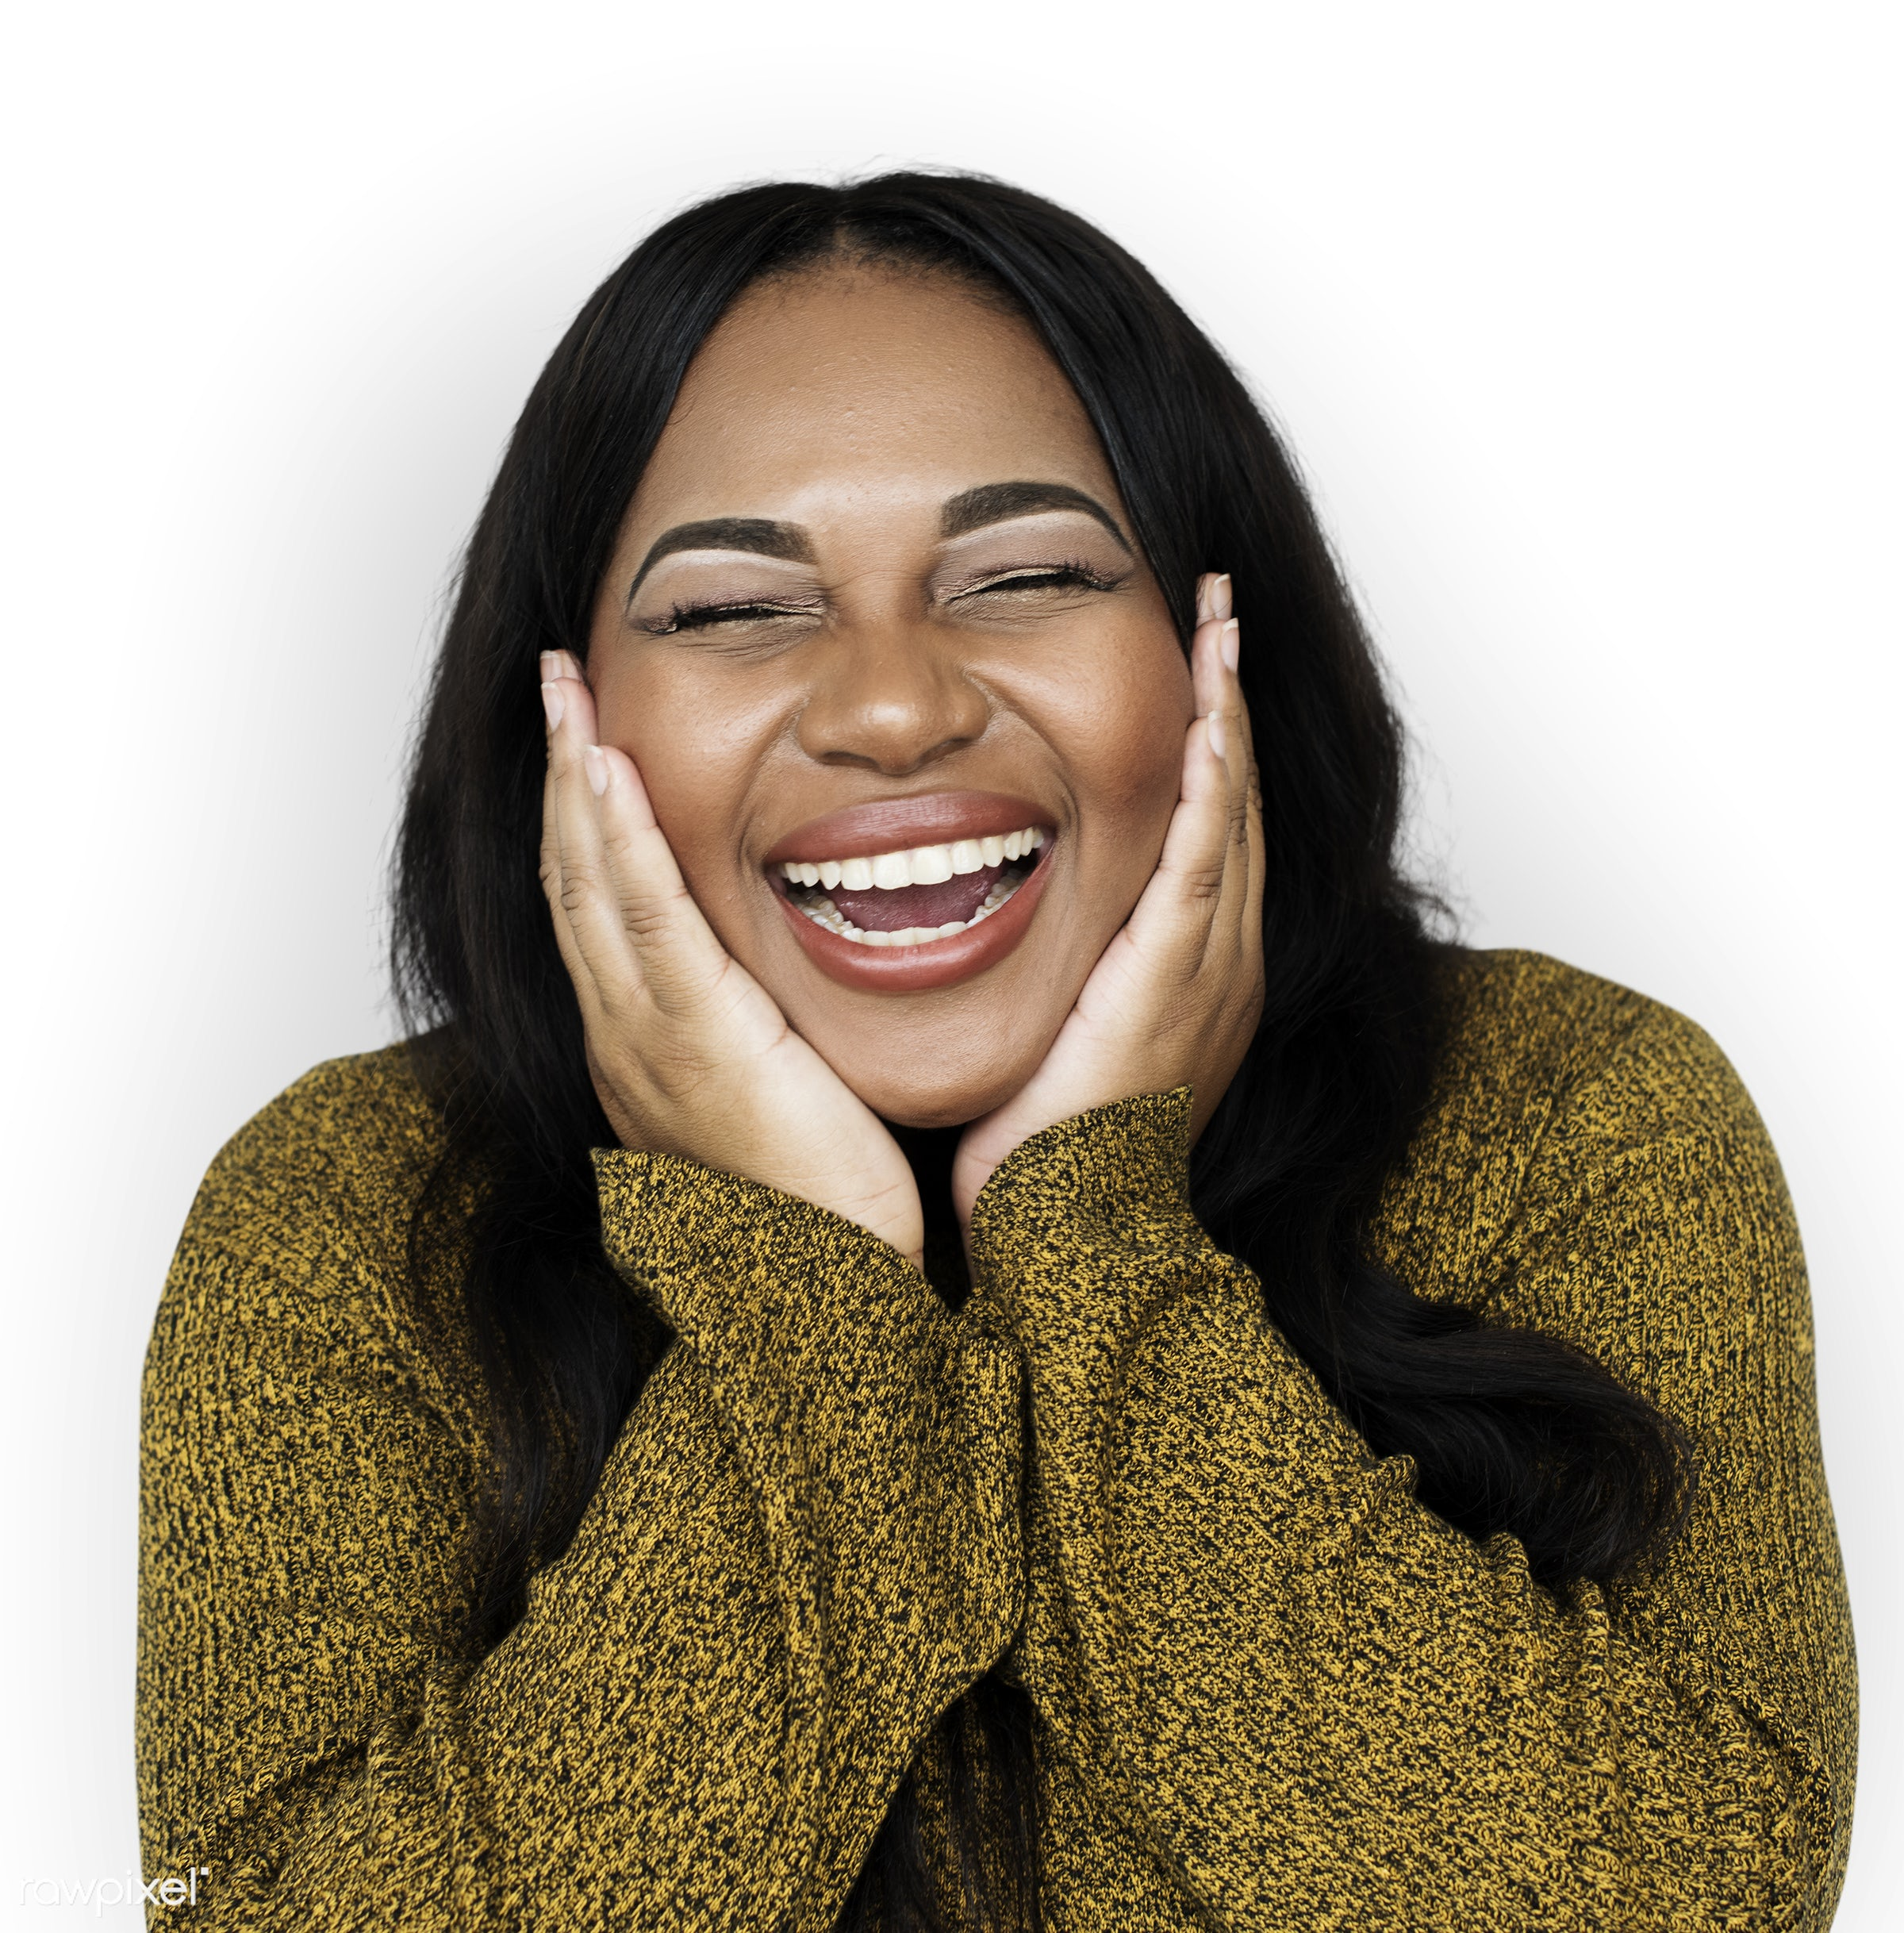 studio, expression, model, person, freedom, african ethnicity, relax, isolated on white, chubby, optimistic, people,...